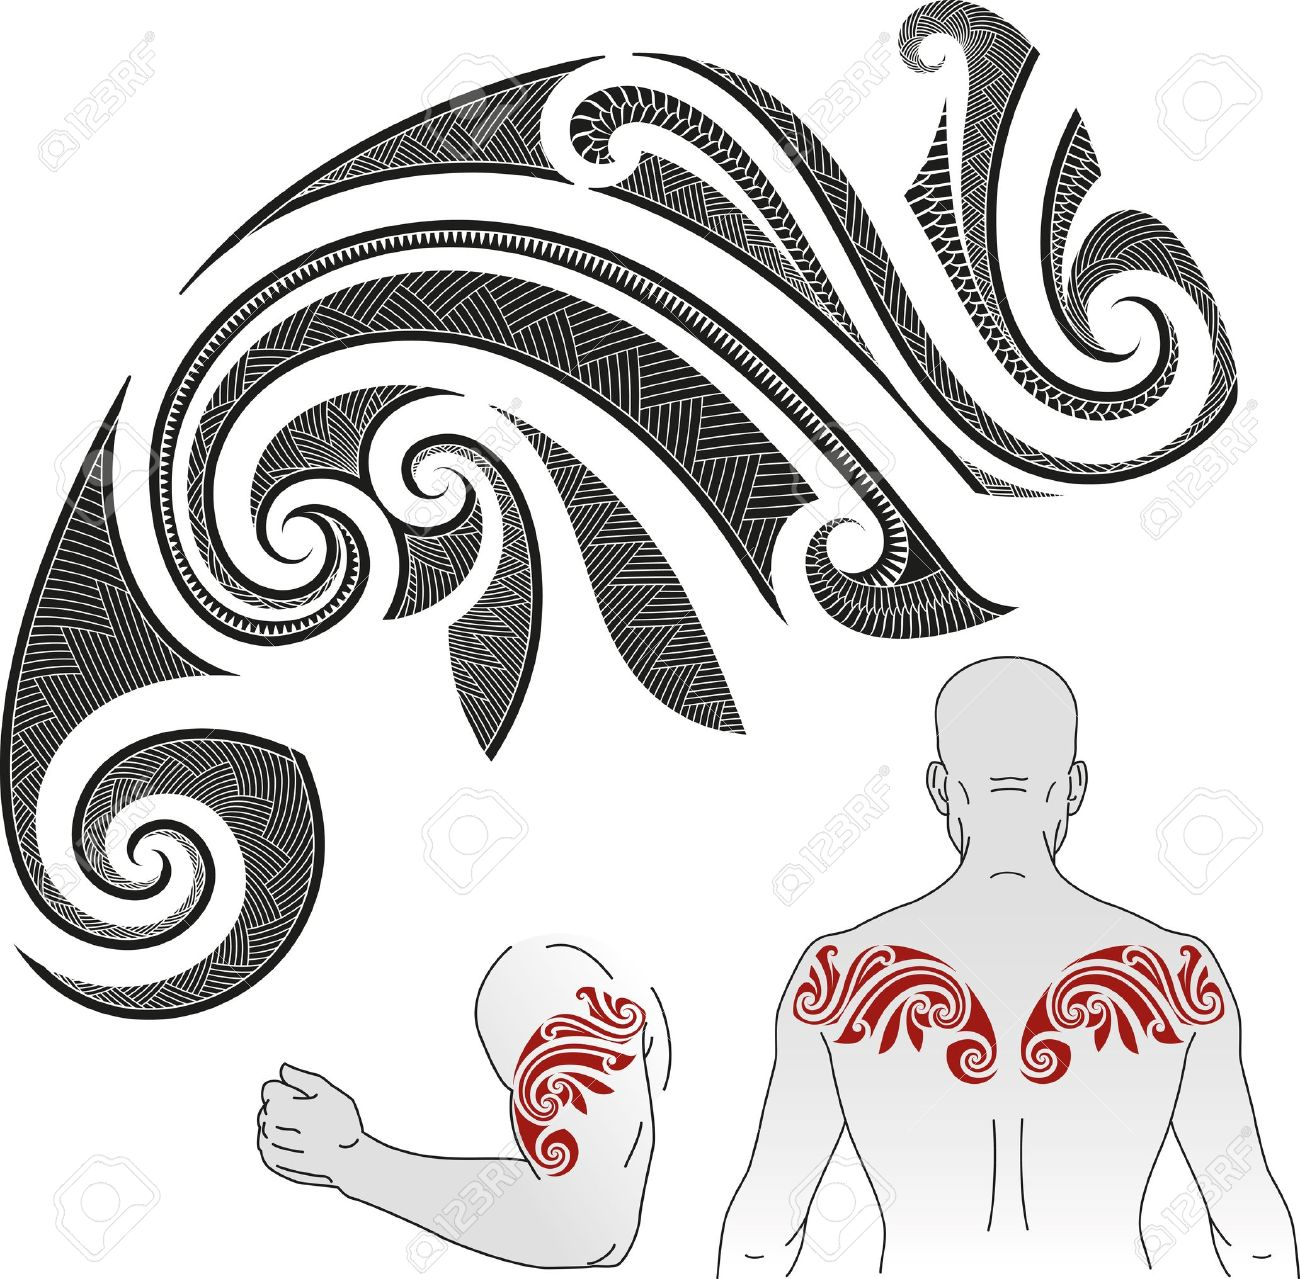 Tribal-Tattoos 21963739-Maori-styled-tattoo-pattern-in-a-shape-of-chameleon-Good-for-a-shoulder-or-an-upper-back-Stock-Vector